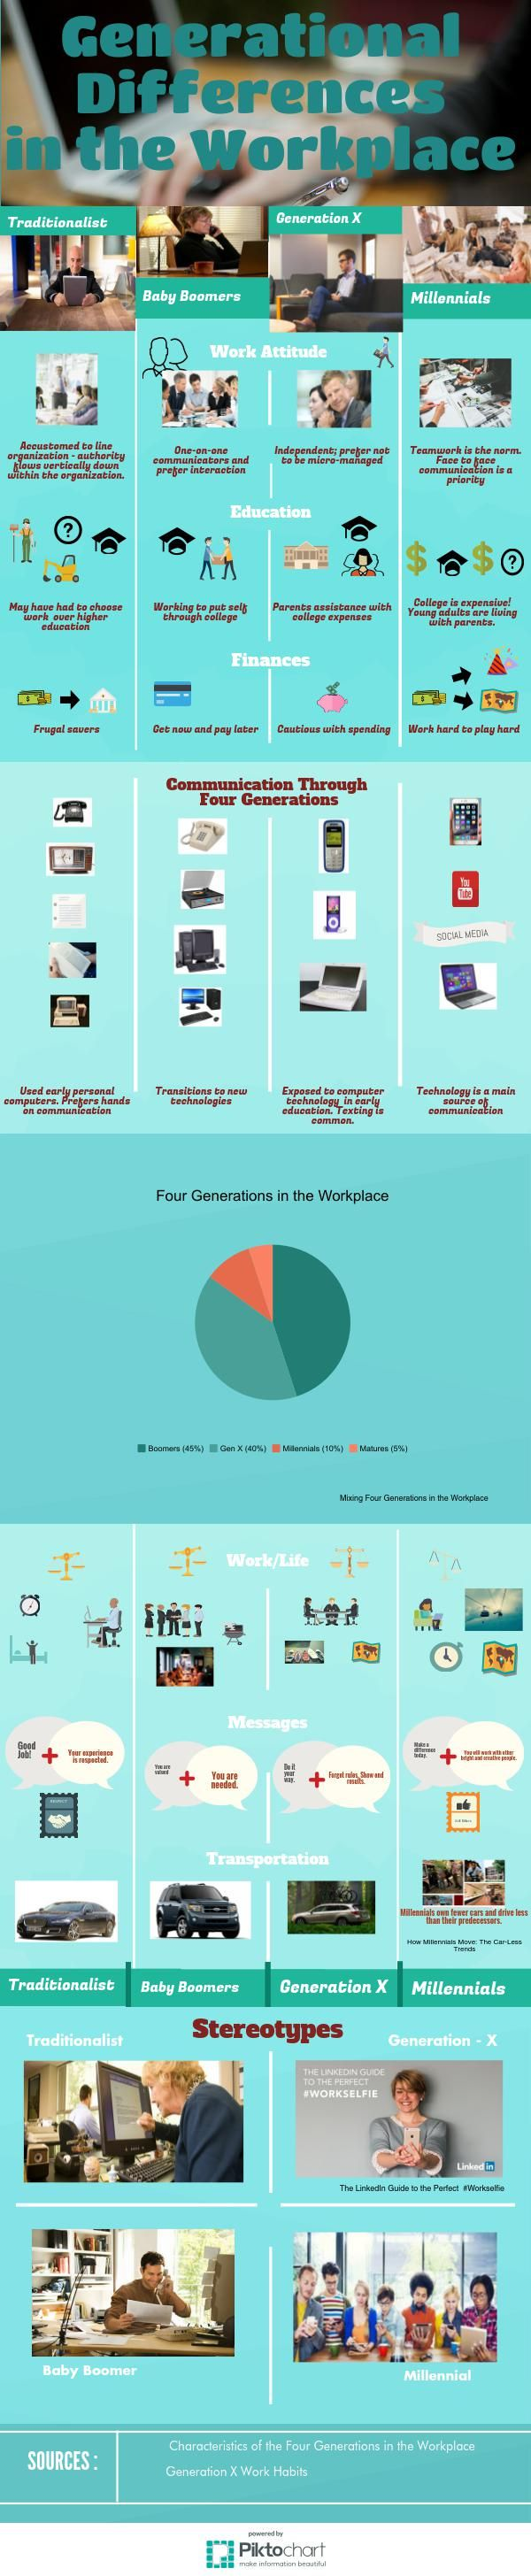 000 Generational Differences in the Workplace Infographic